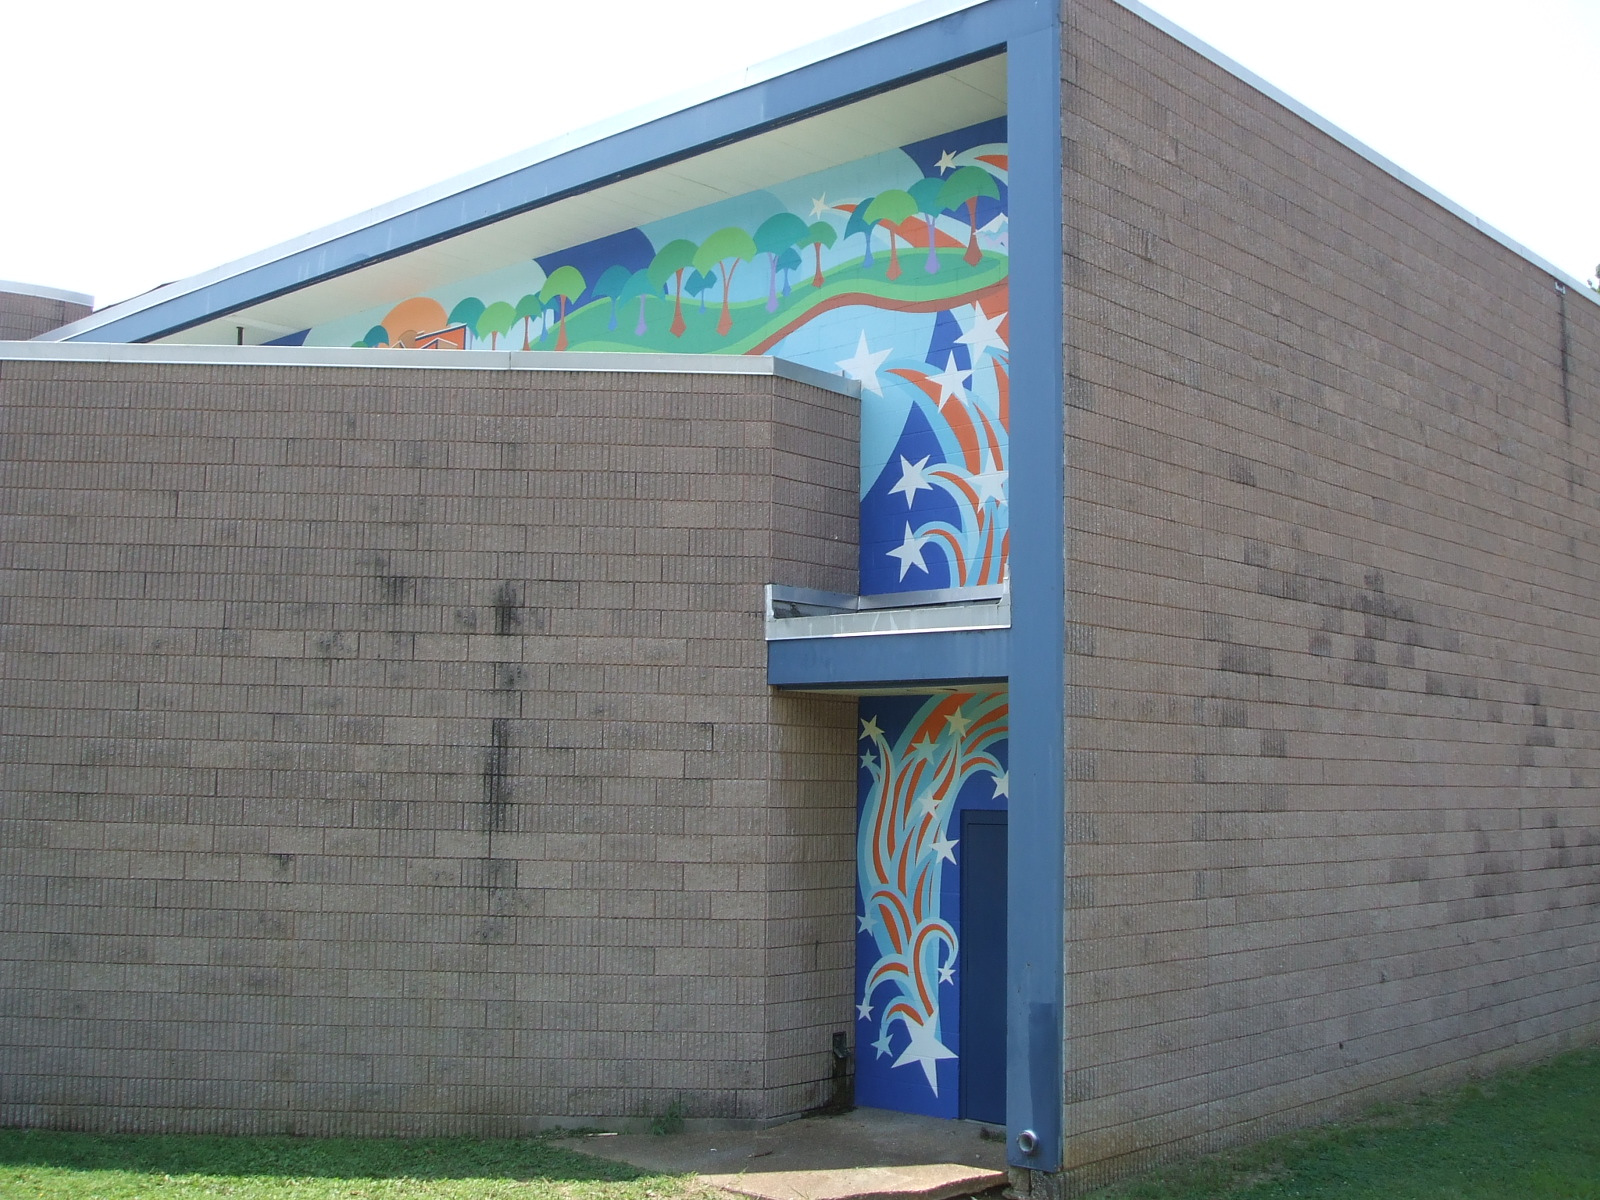 The North Frayser Community Center 